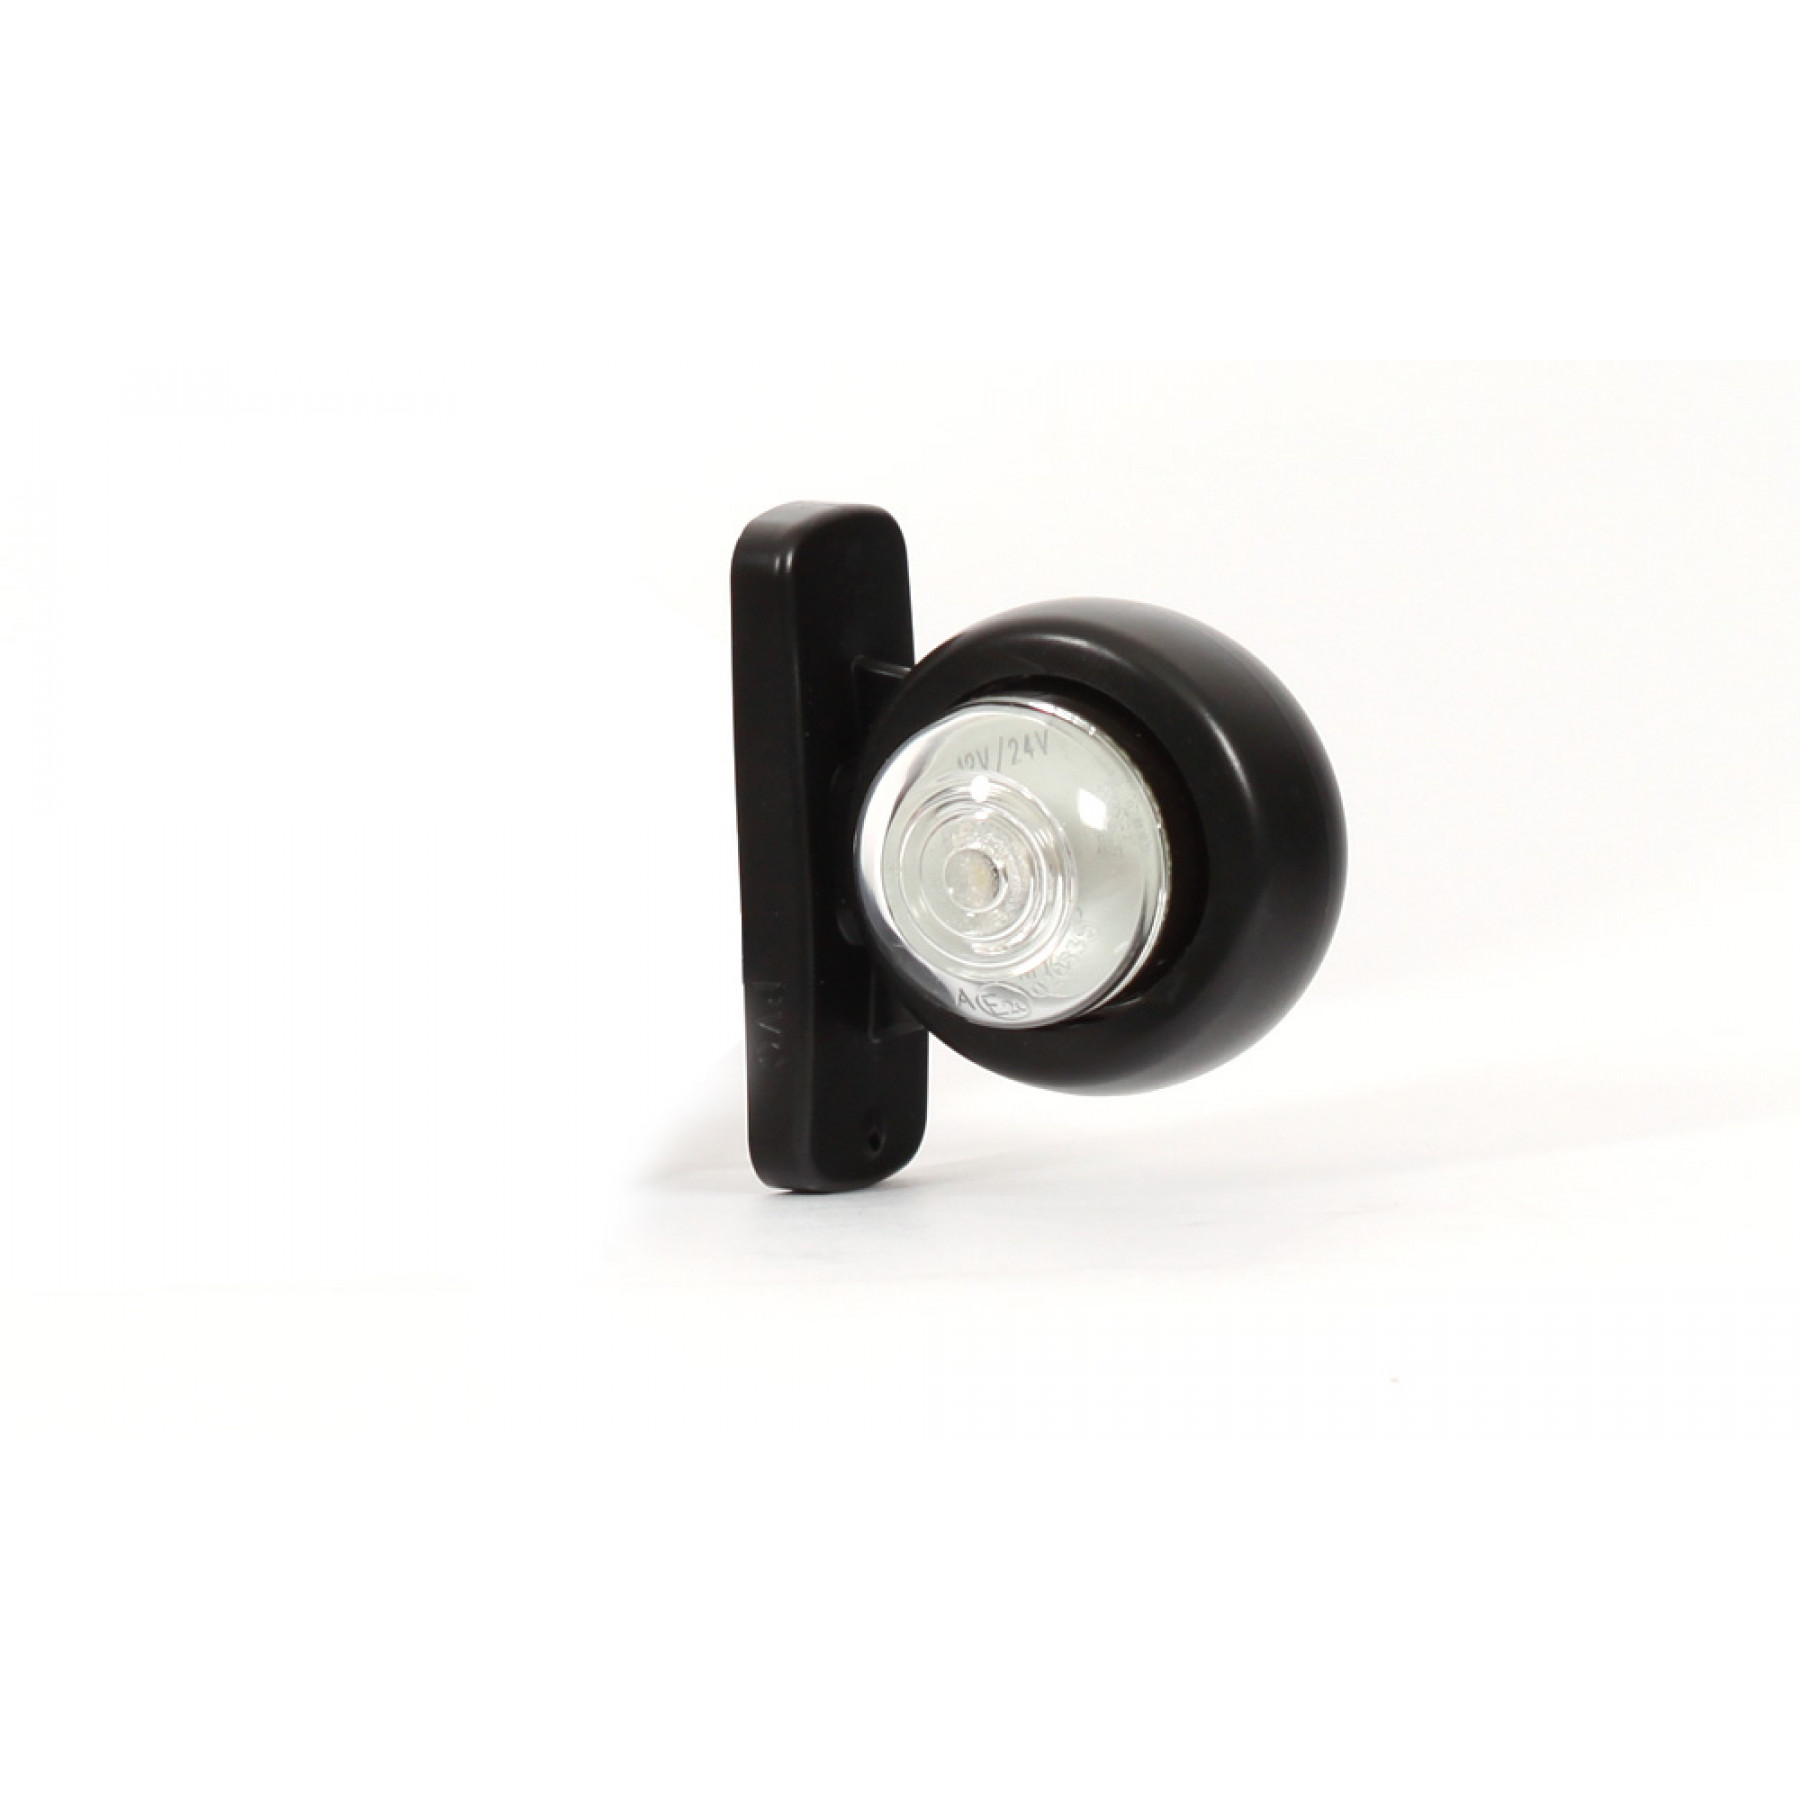 Markerings-breedtelamp LED rond kort 12/24v